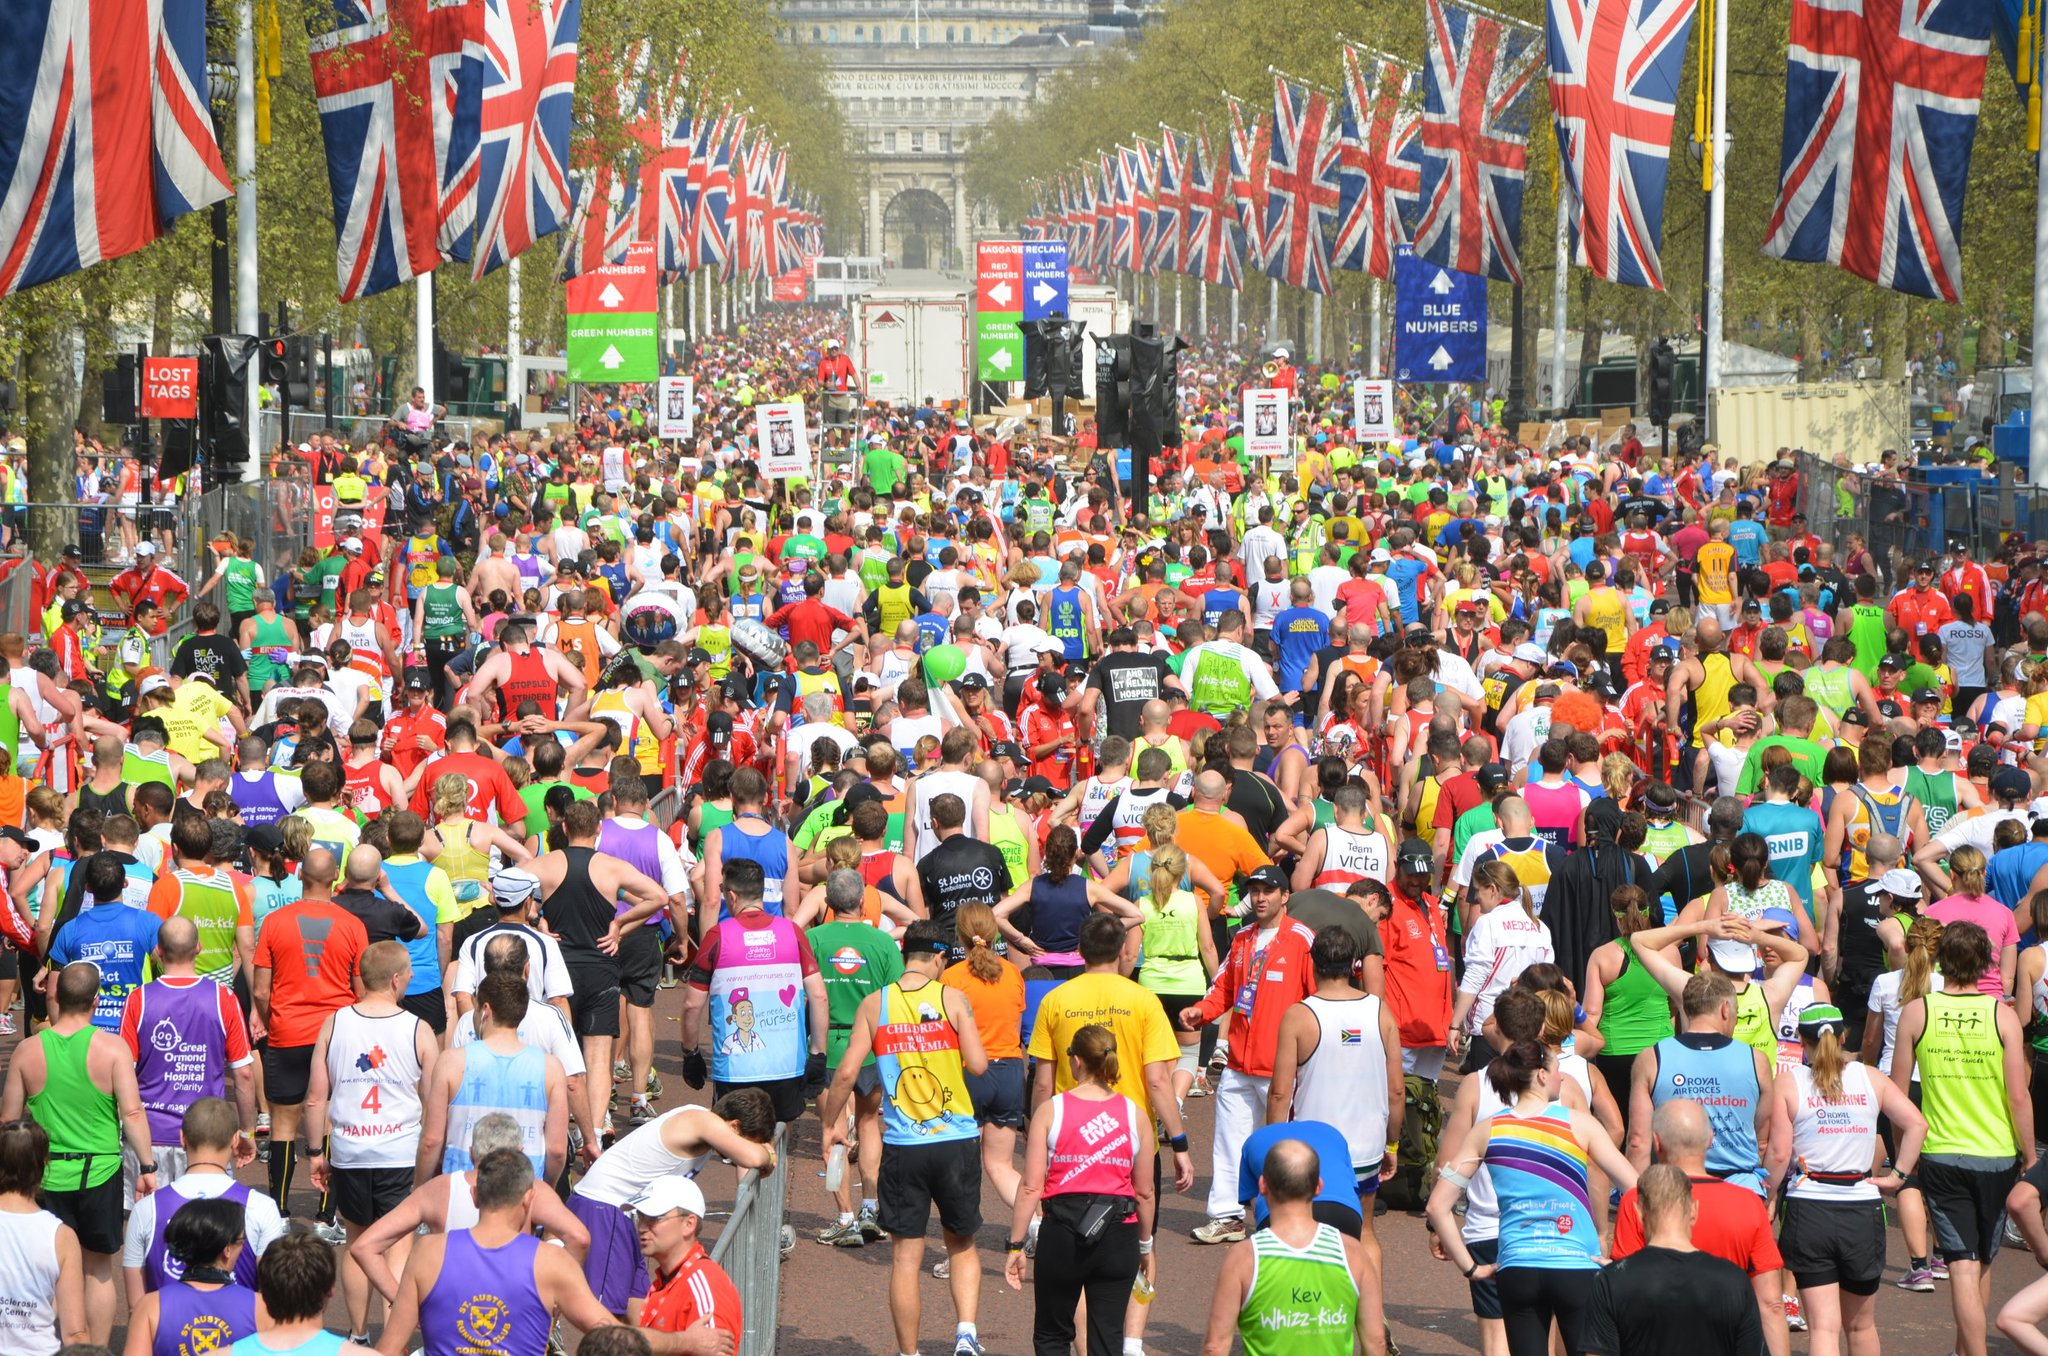 enter-the-virgin-london-marathon-ballot-11067